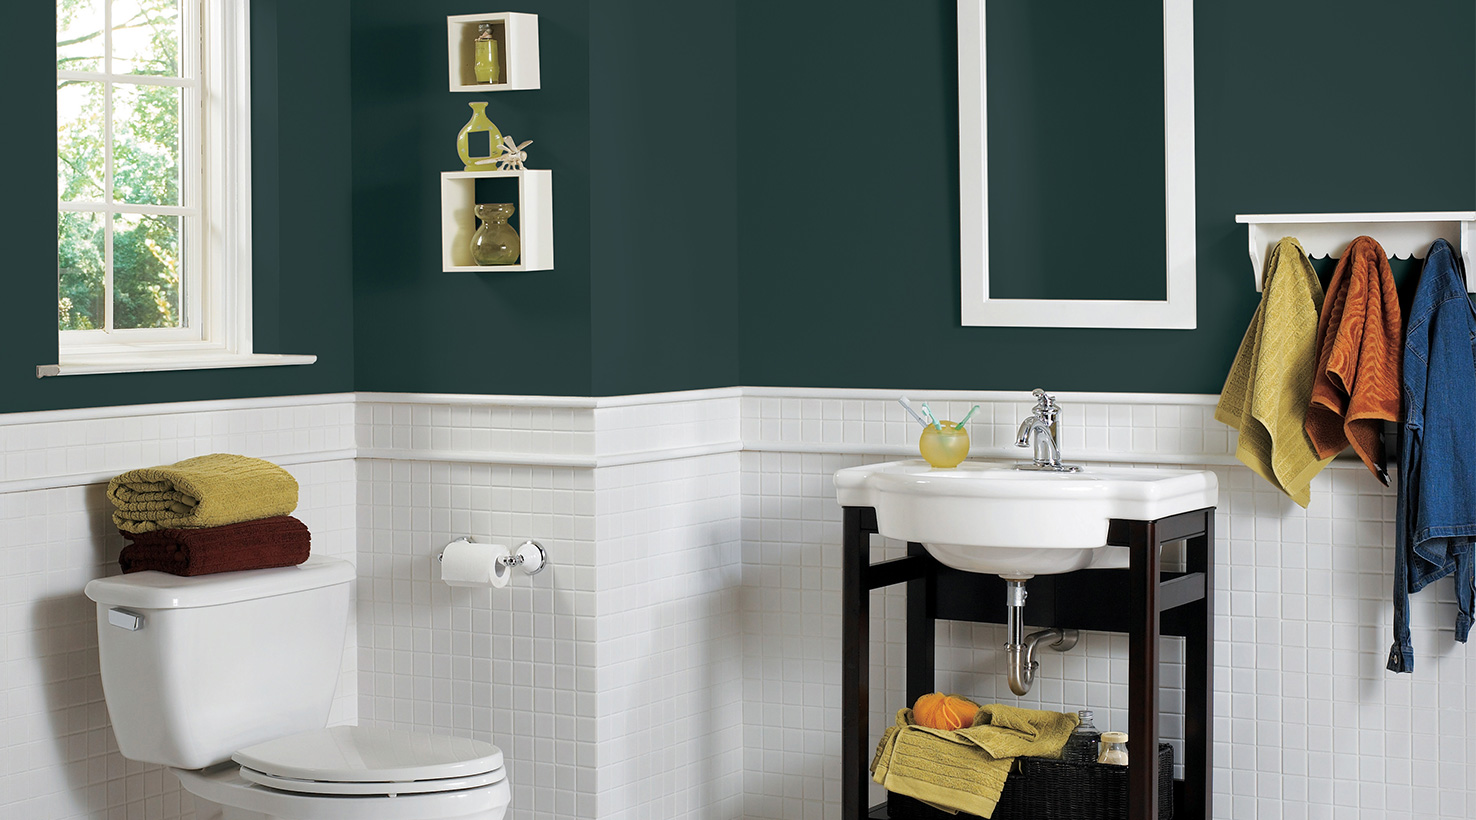 Bathroom Paint Color Ideas Inspiration Gallery Sherwin Williams,How To Decorate Your Room With Christmas Lights